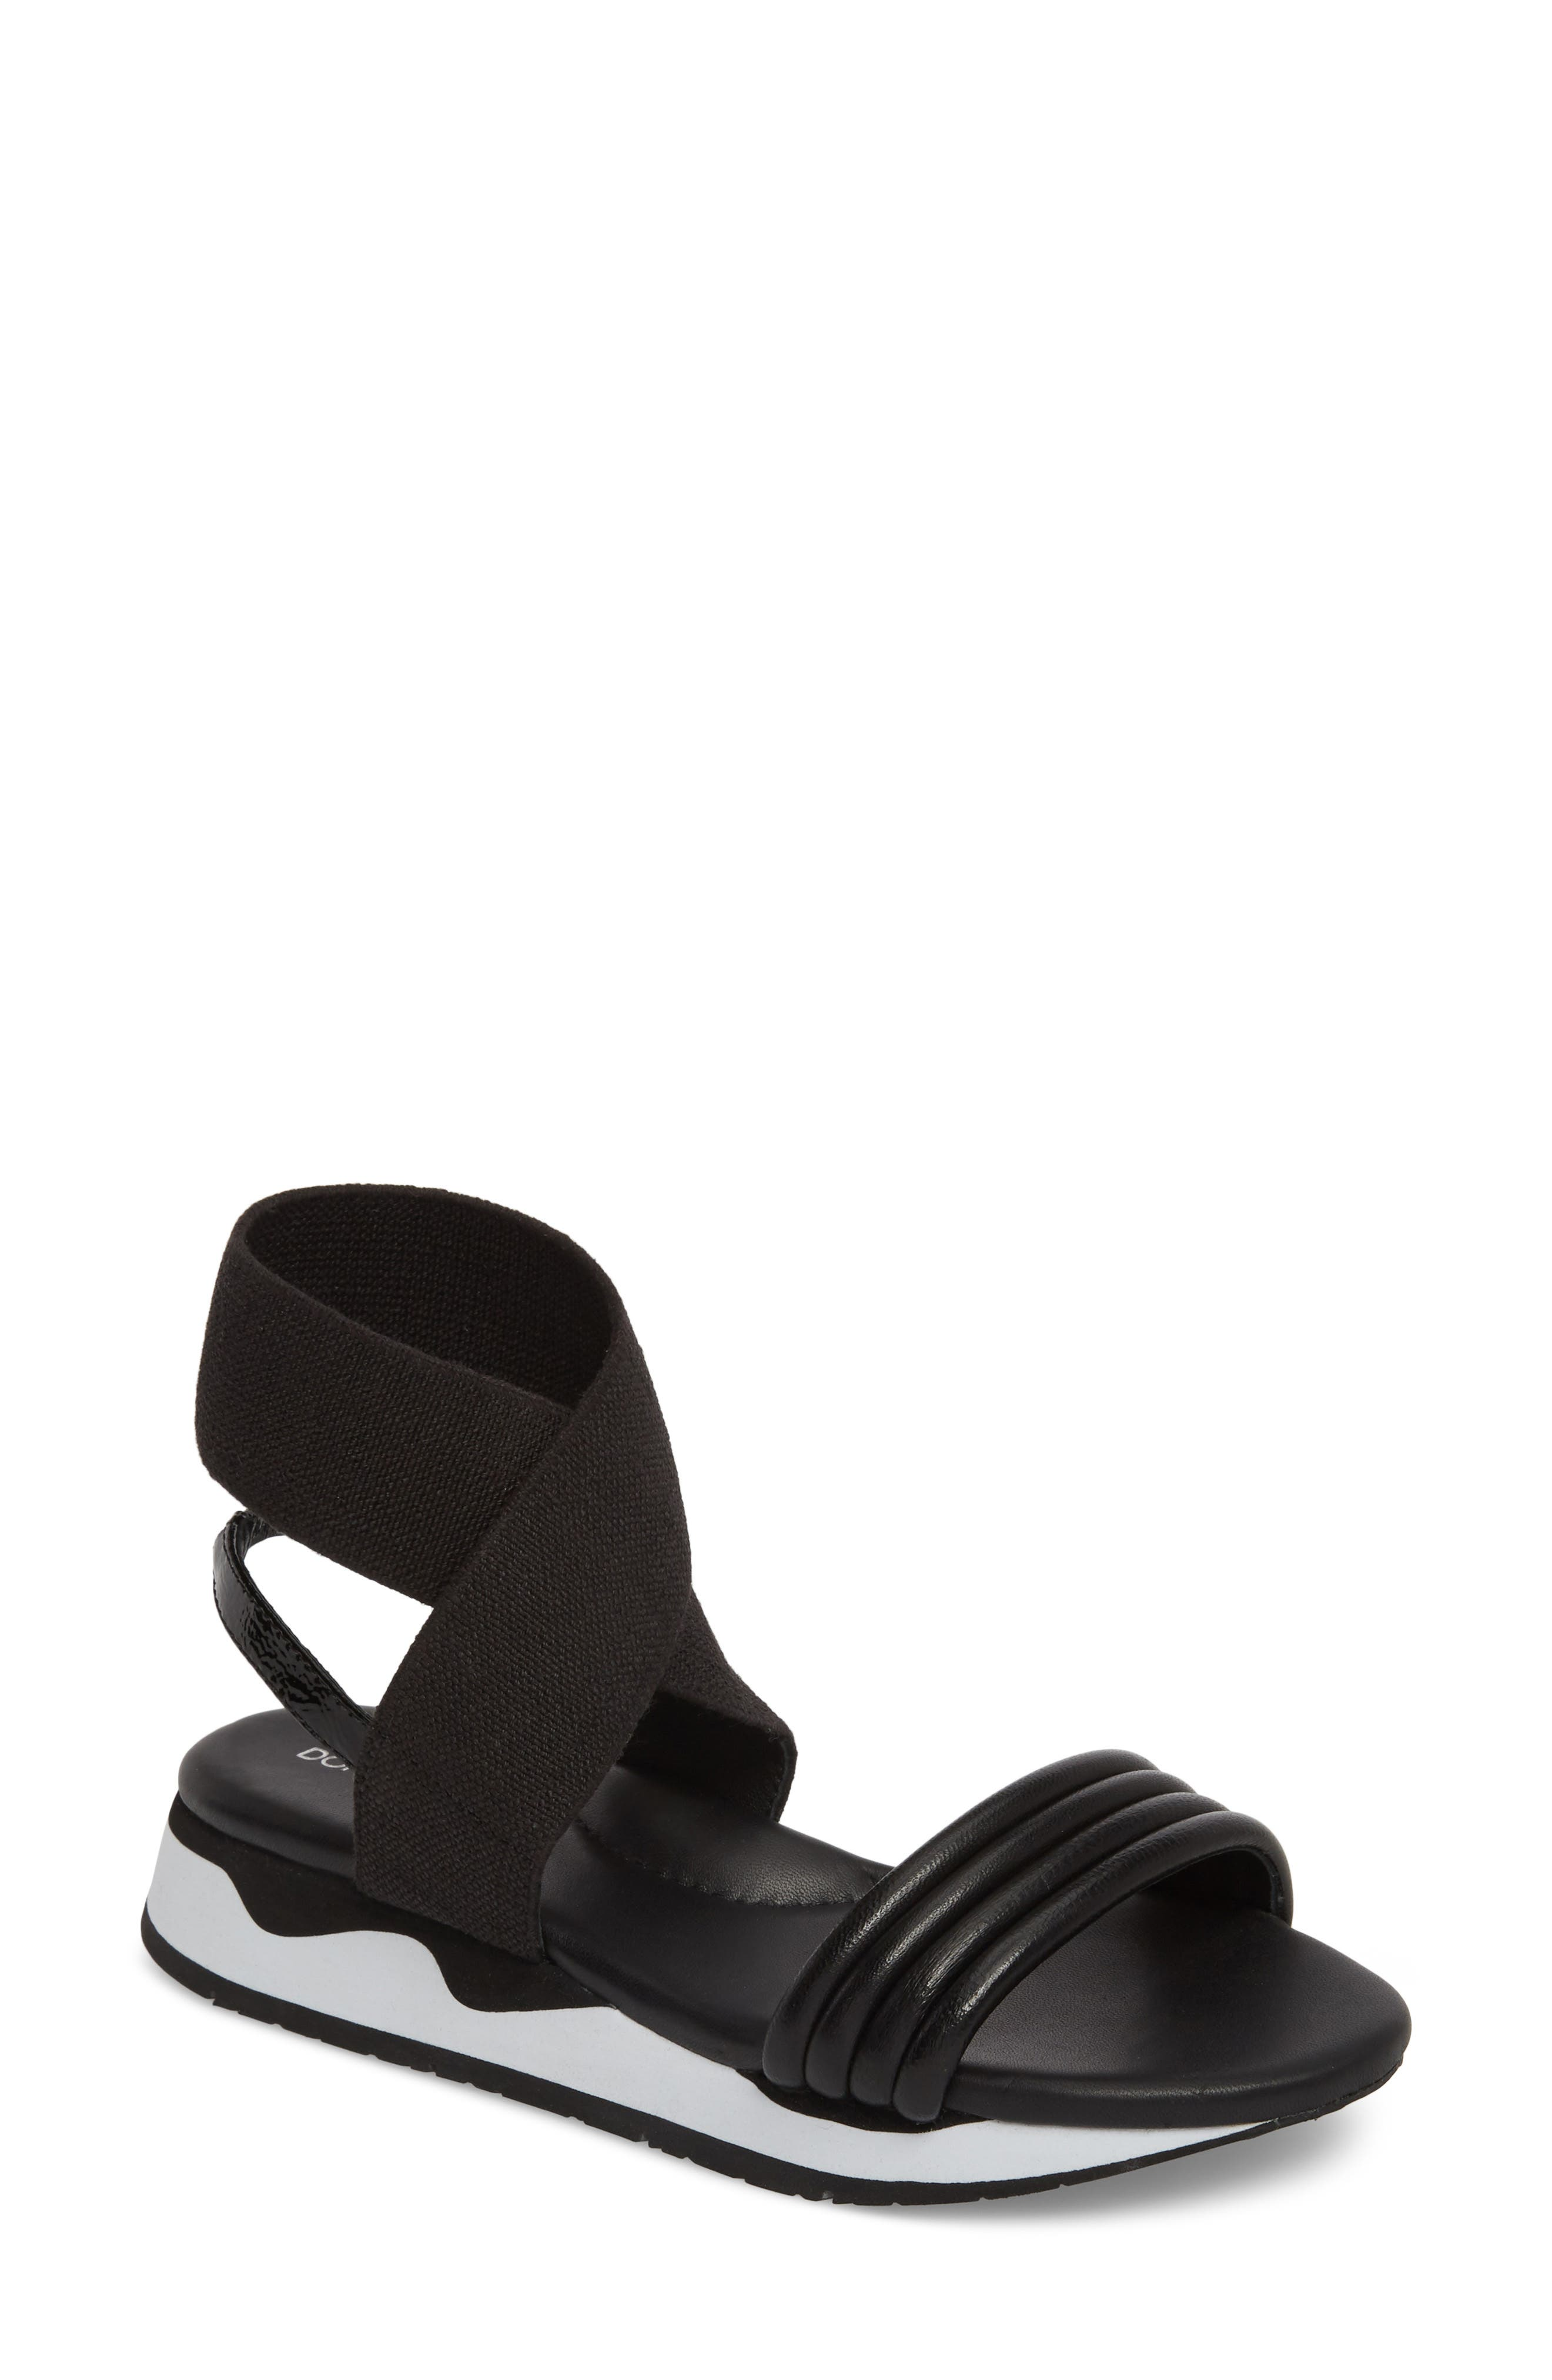 Shaye Ankle Strap Sandal,                         Main,                         color, Black Leather